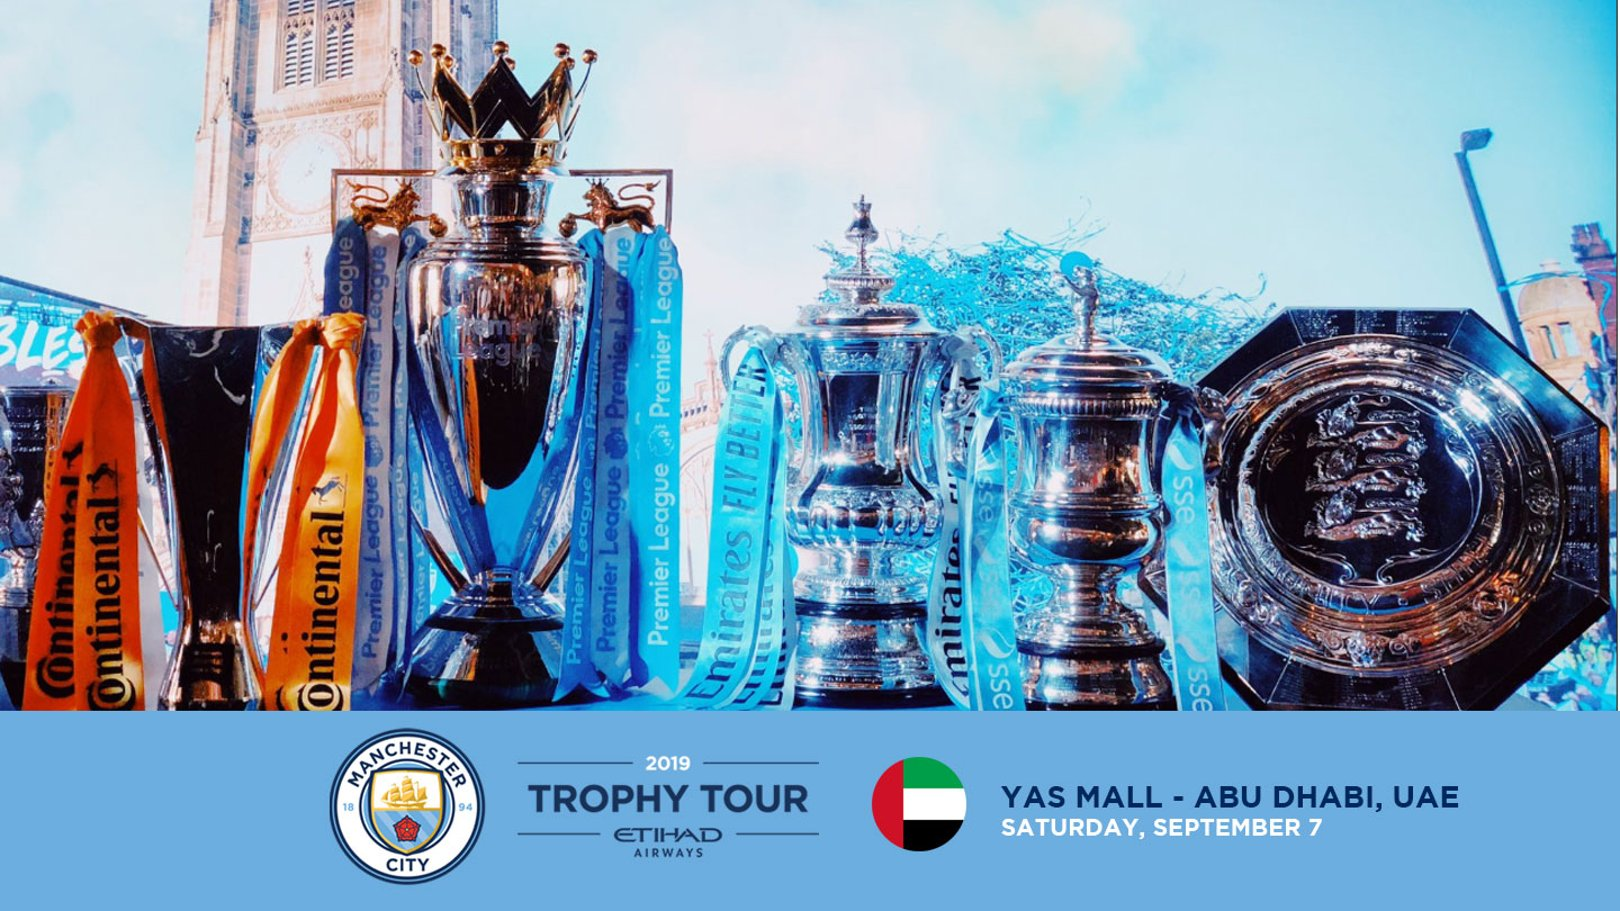 TROPHY TOUR: City are heading to Abu Dhabi.